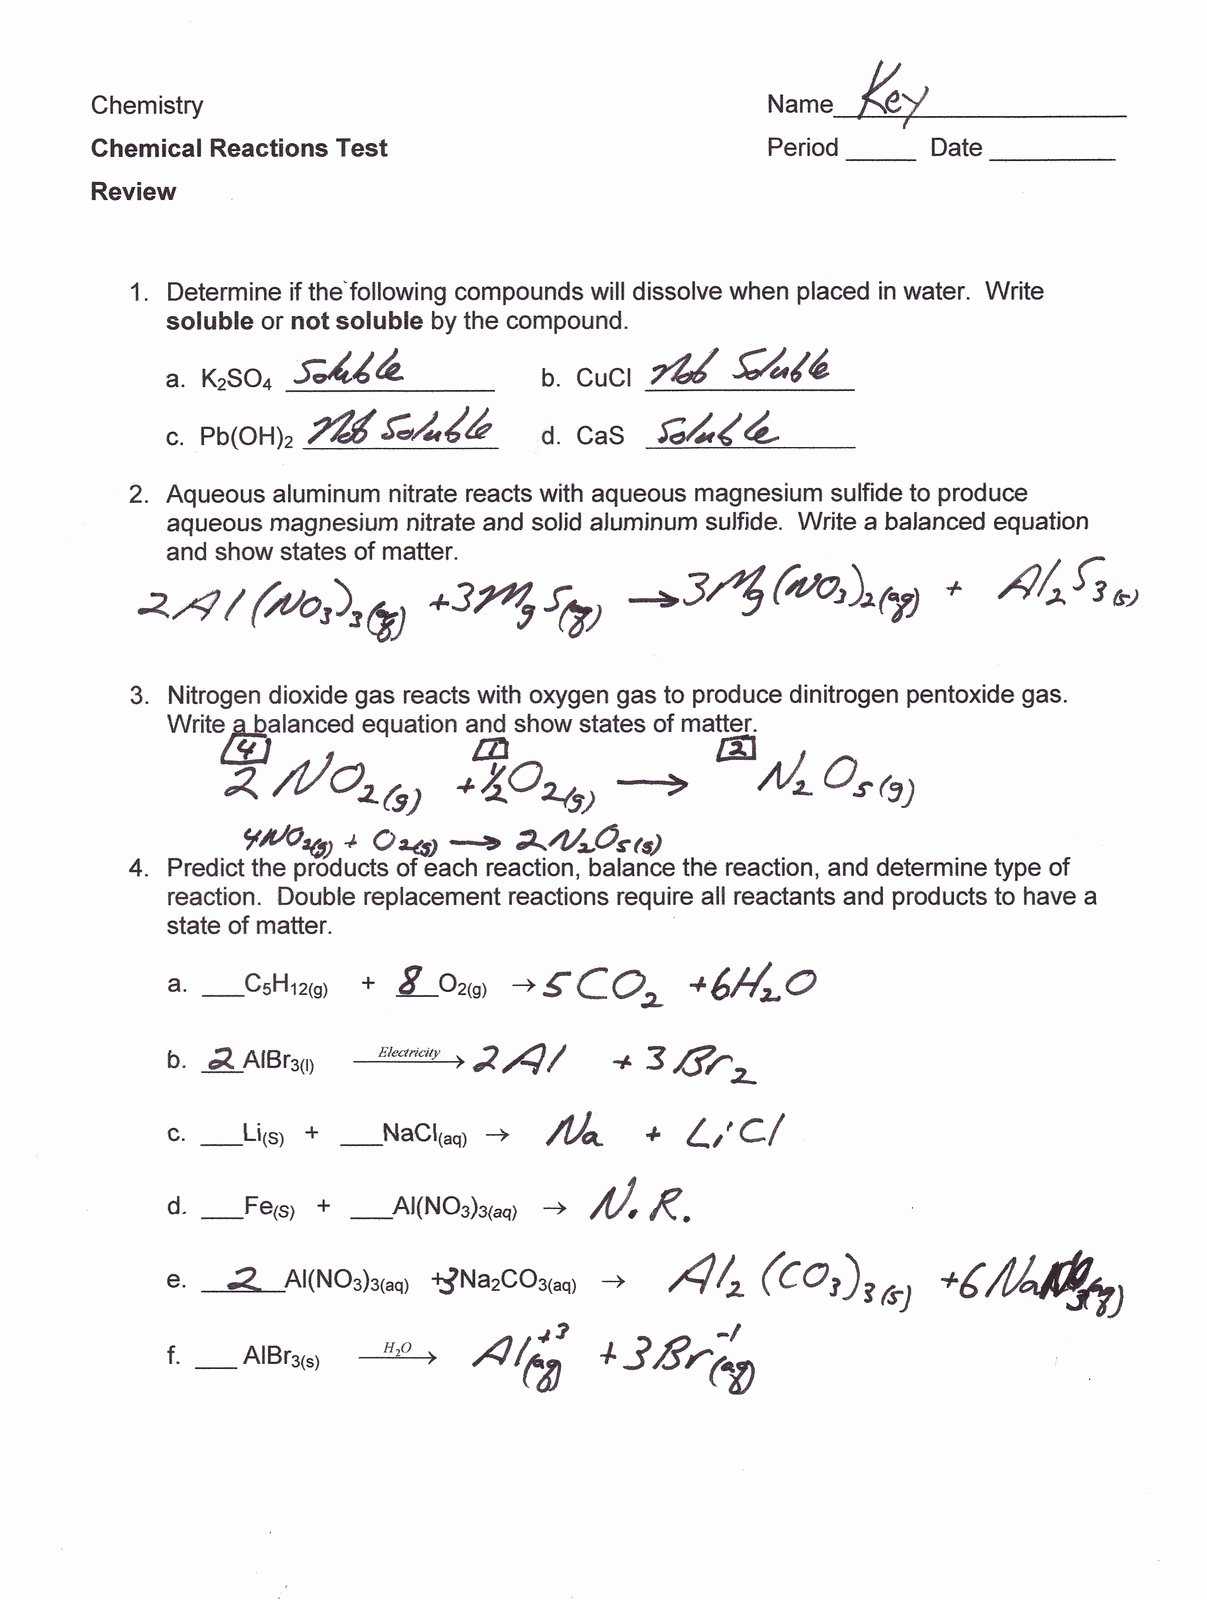 Chemical Reaction Type Worksheet Beautiful Mr Brueckner S Chemistry Class Hhs 2011 12 February 2012